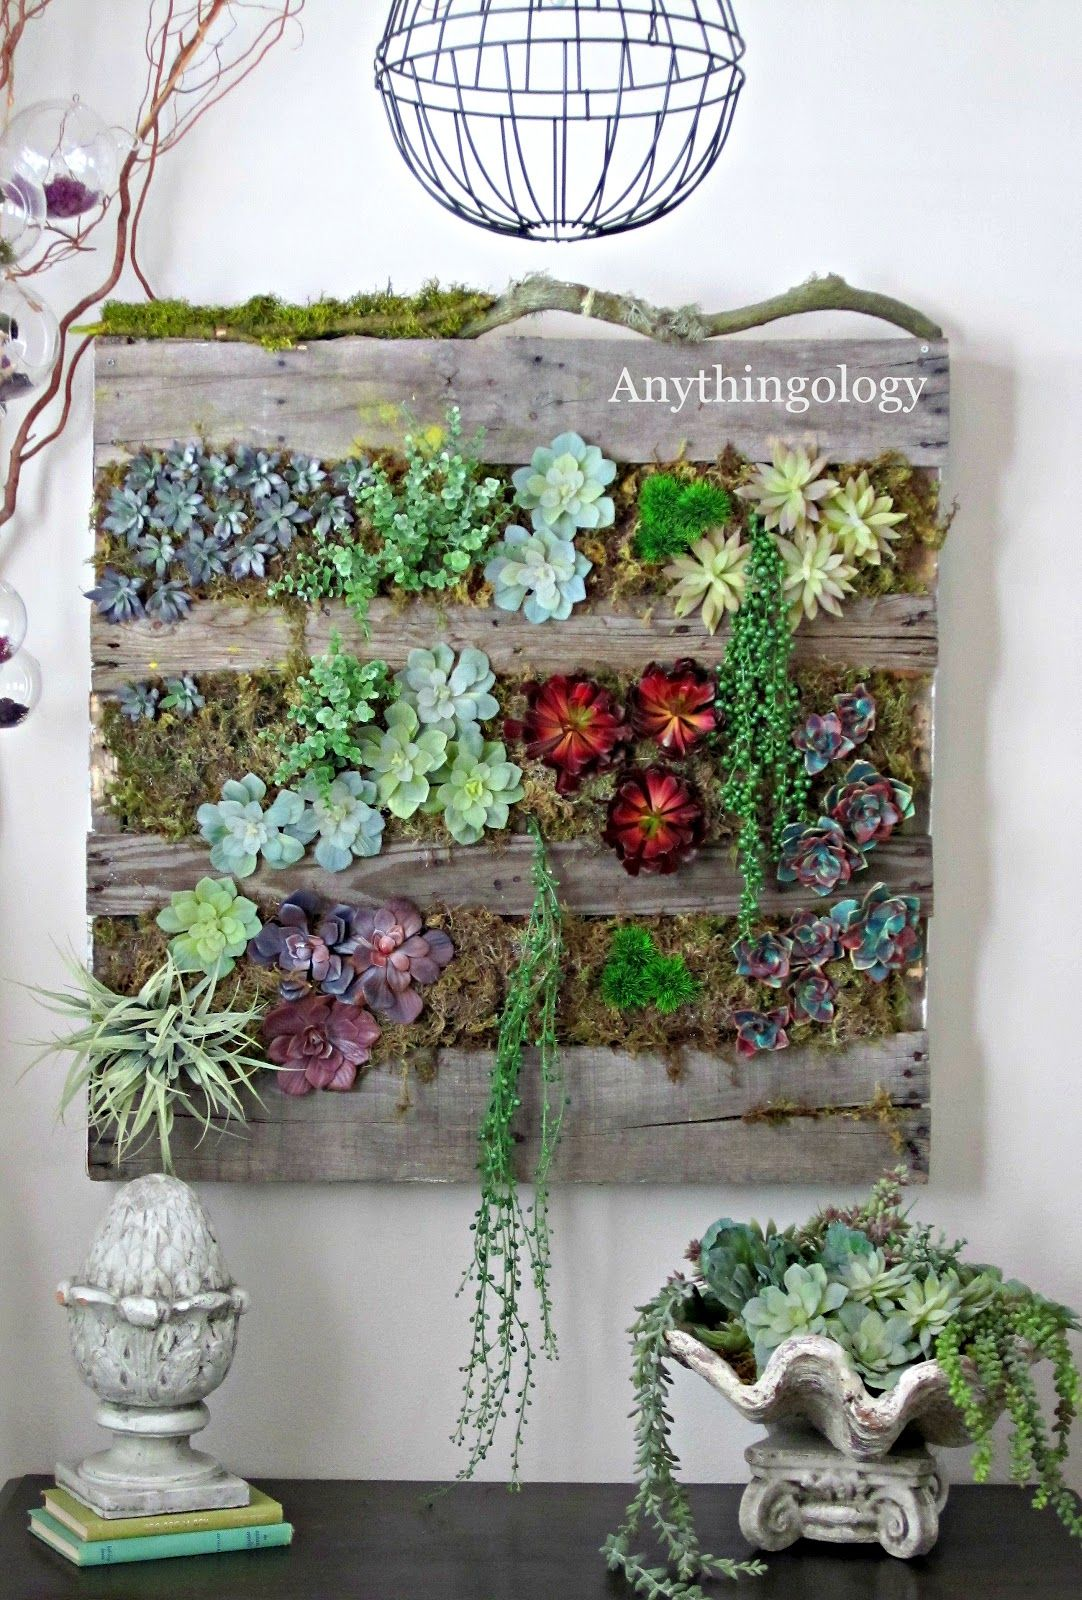 Anythingology.com great idea for indoor vertical succulent garden......using fake plants!  No water mess!